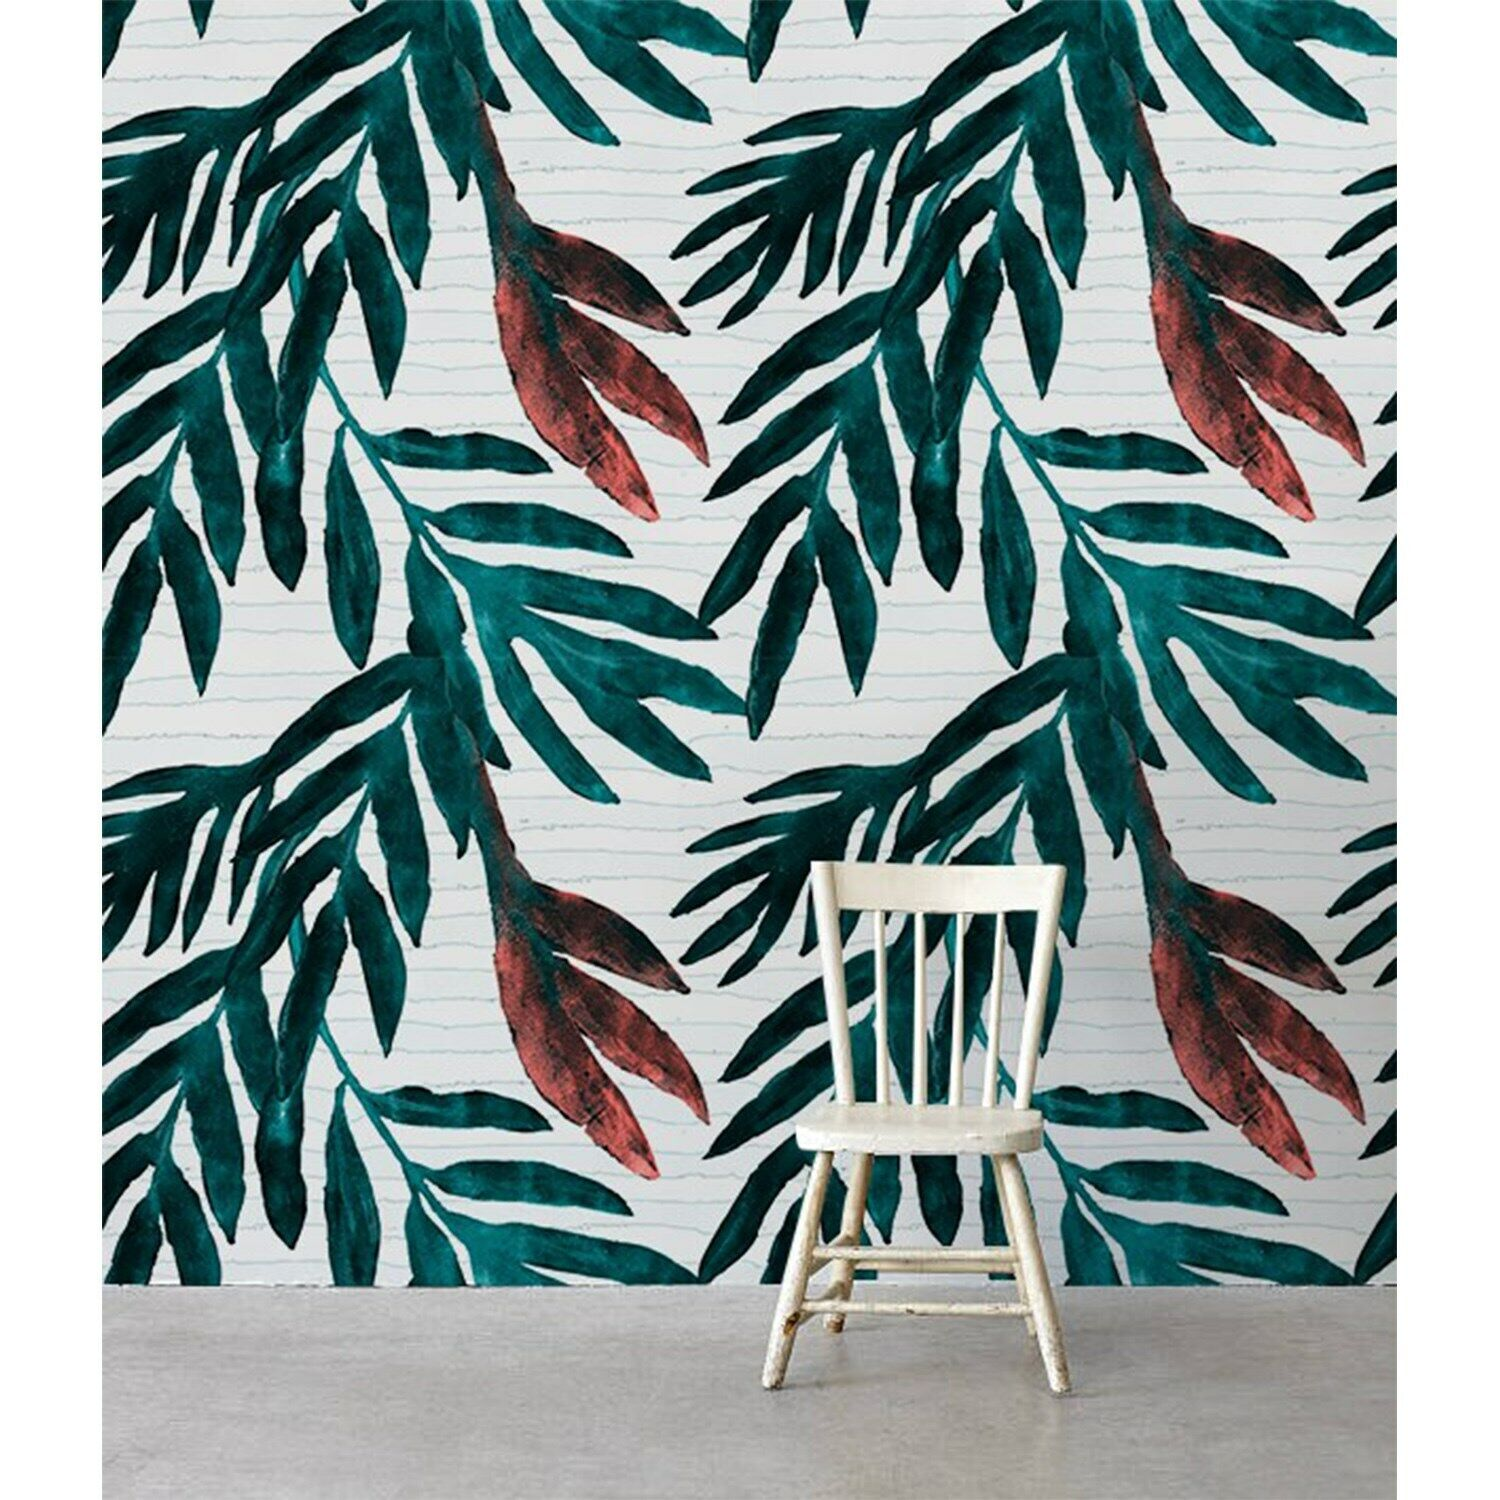 Non-Woven wallpaper Painted Leaf WaterFarbe Leaves Traditional art Home Mural